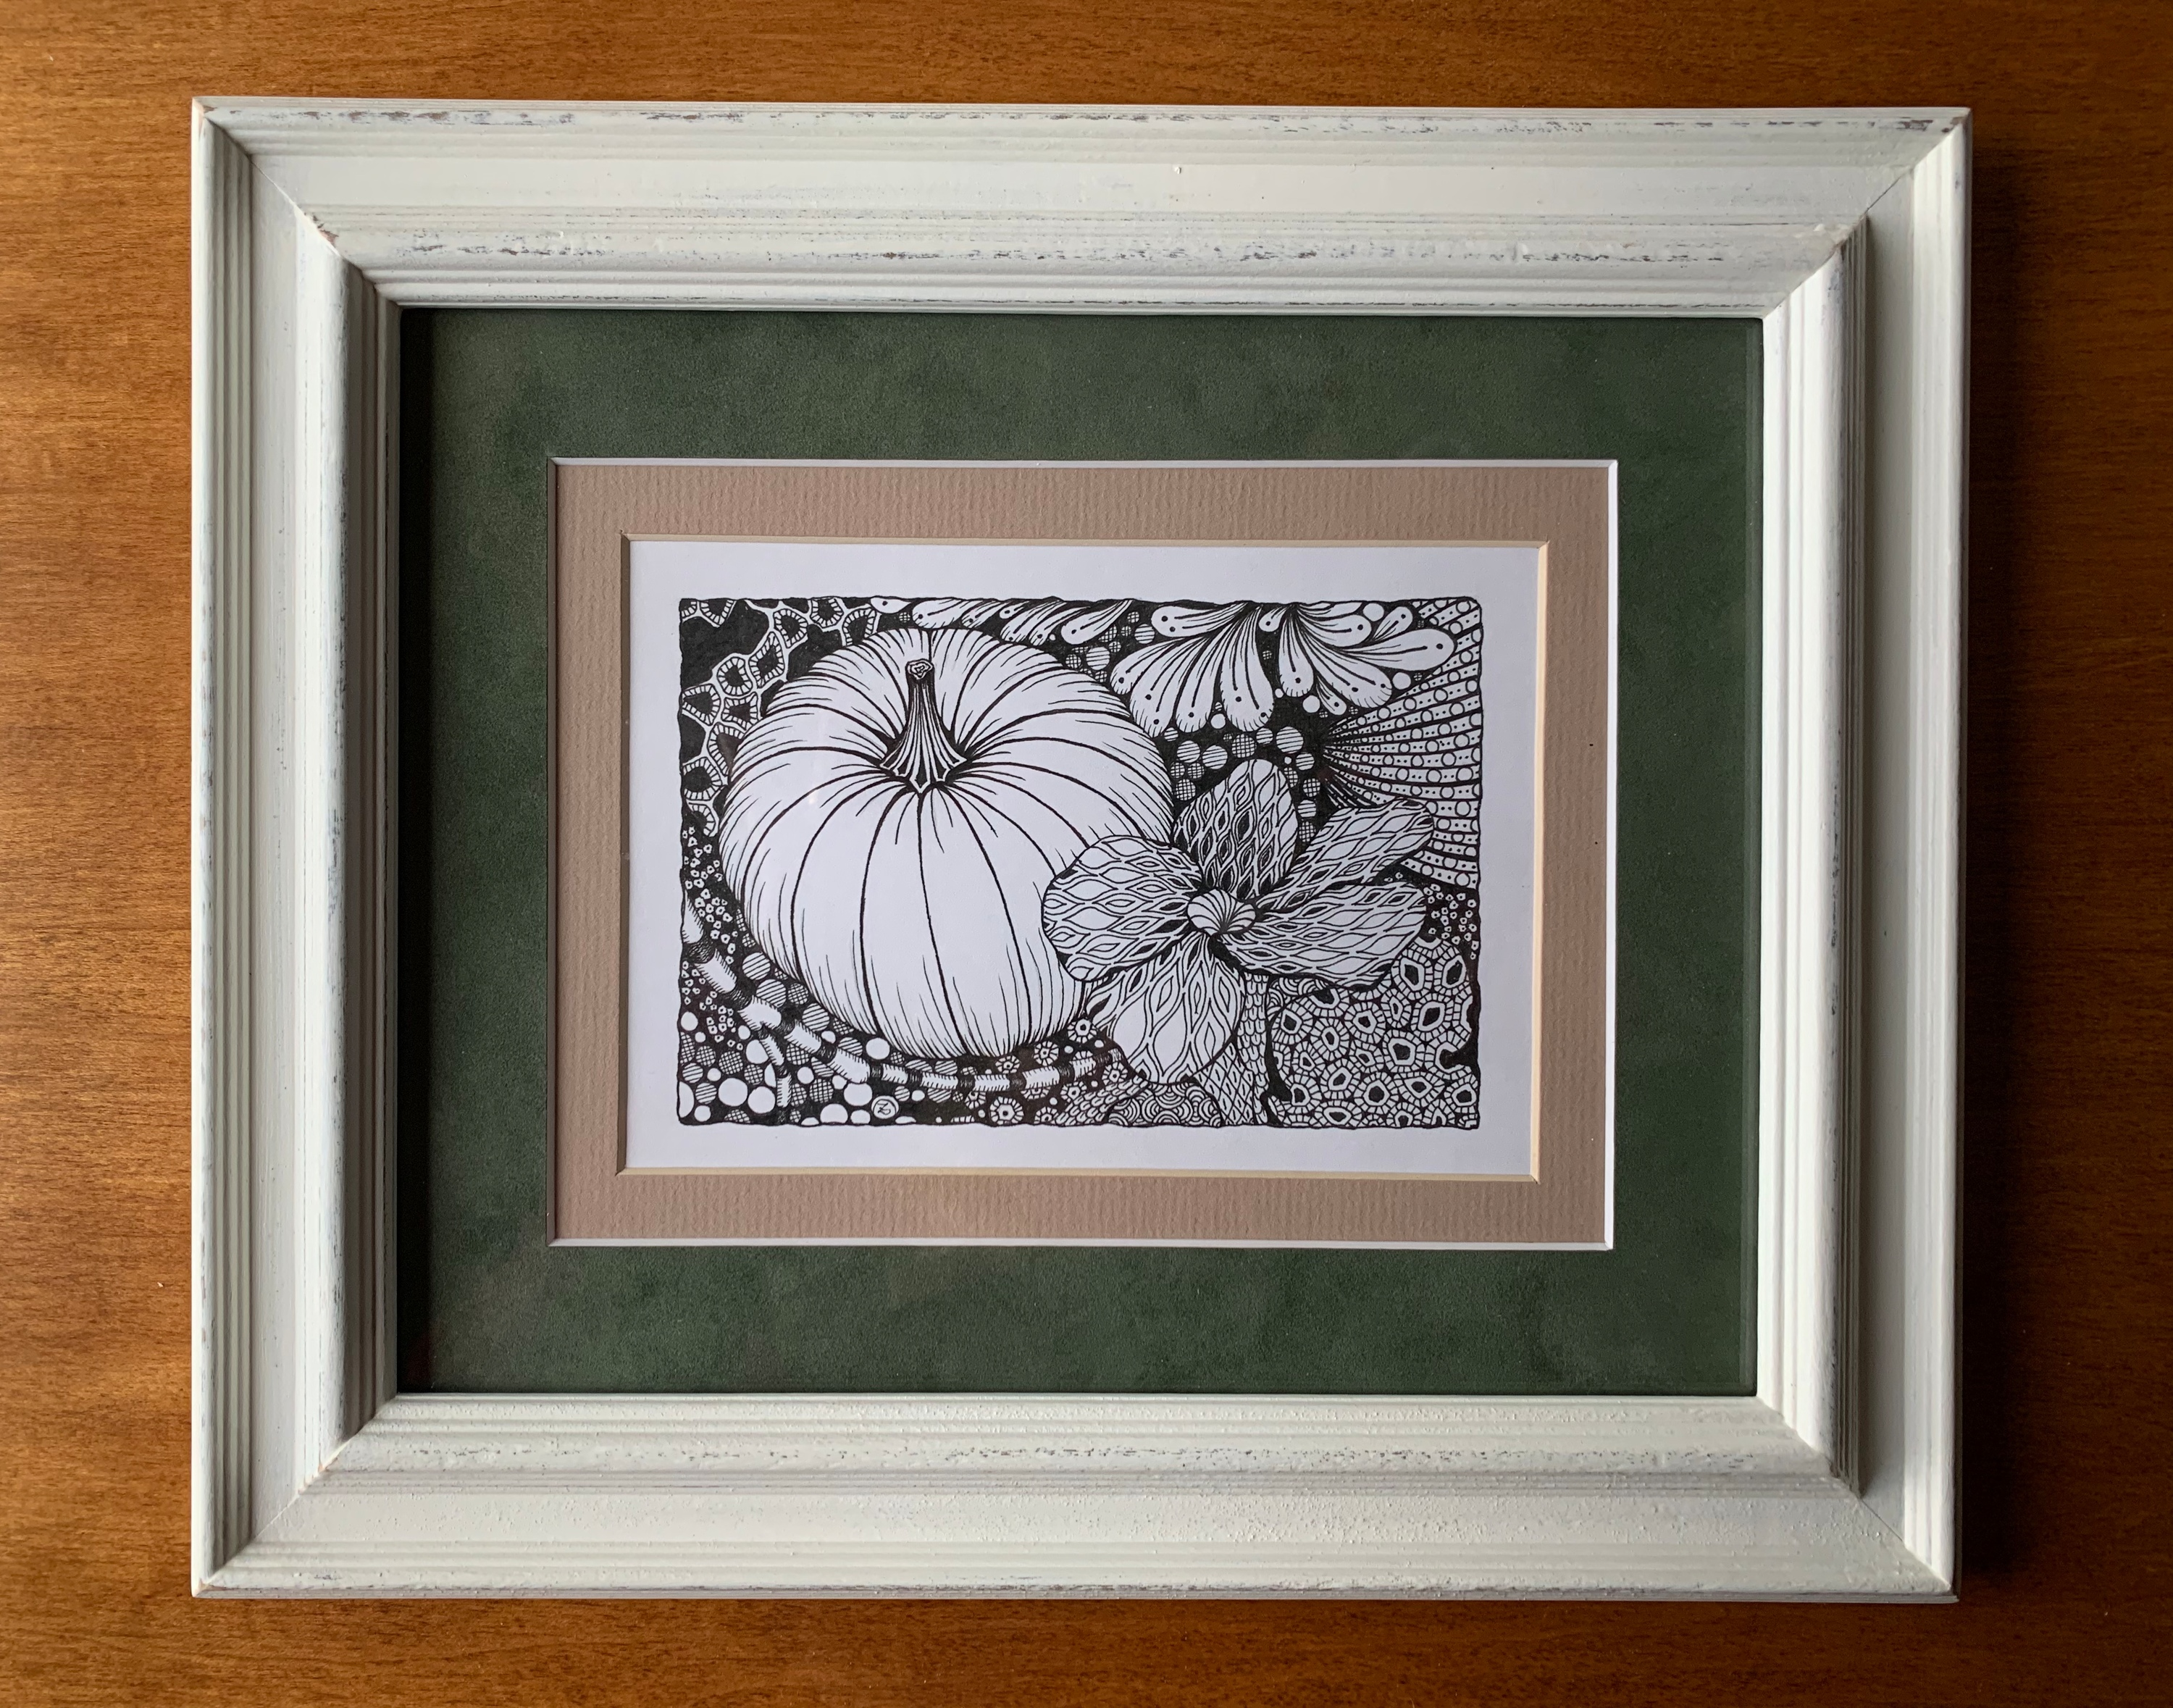 Pumpkin patch  framed original tm3fby